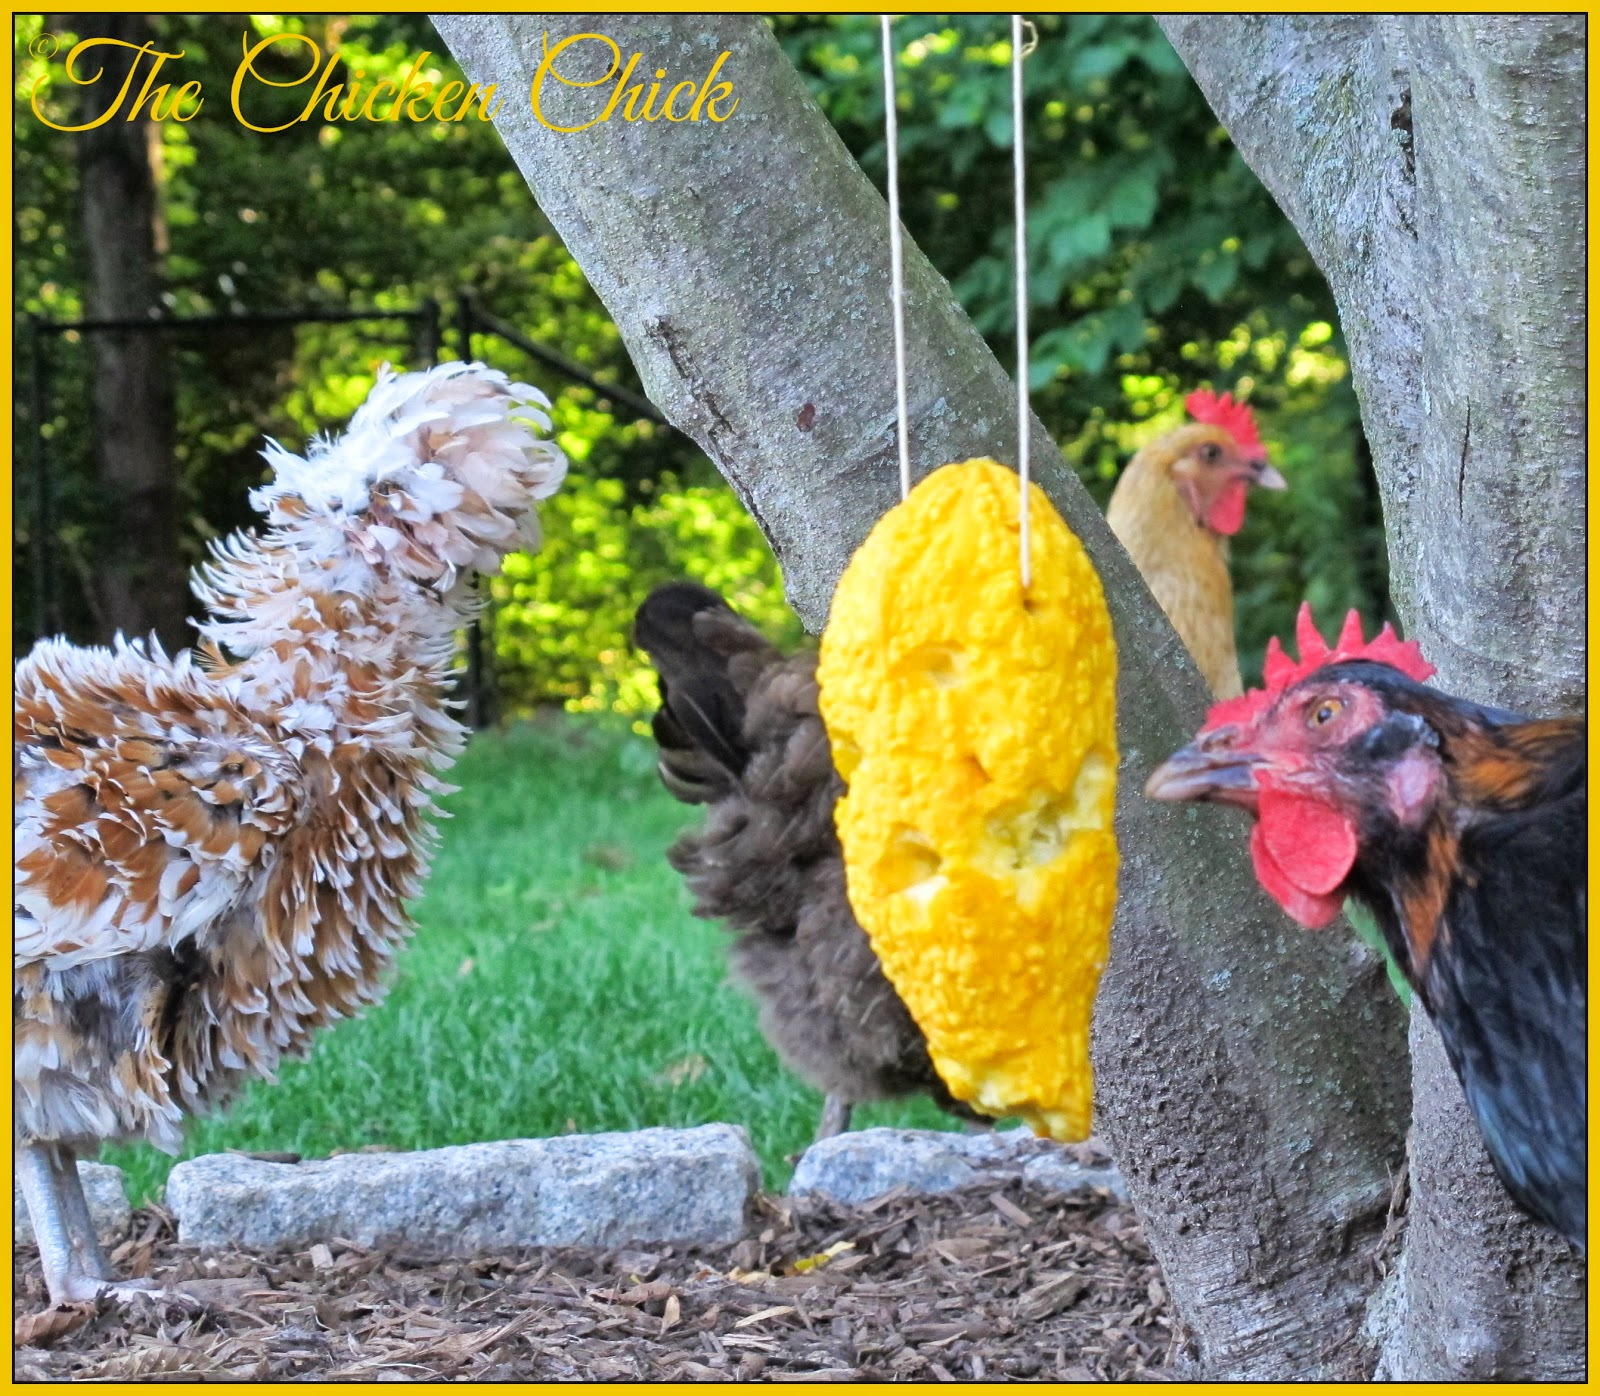 Summer Squash Piñata boredom buster for chickens